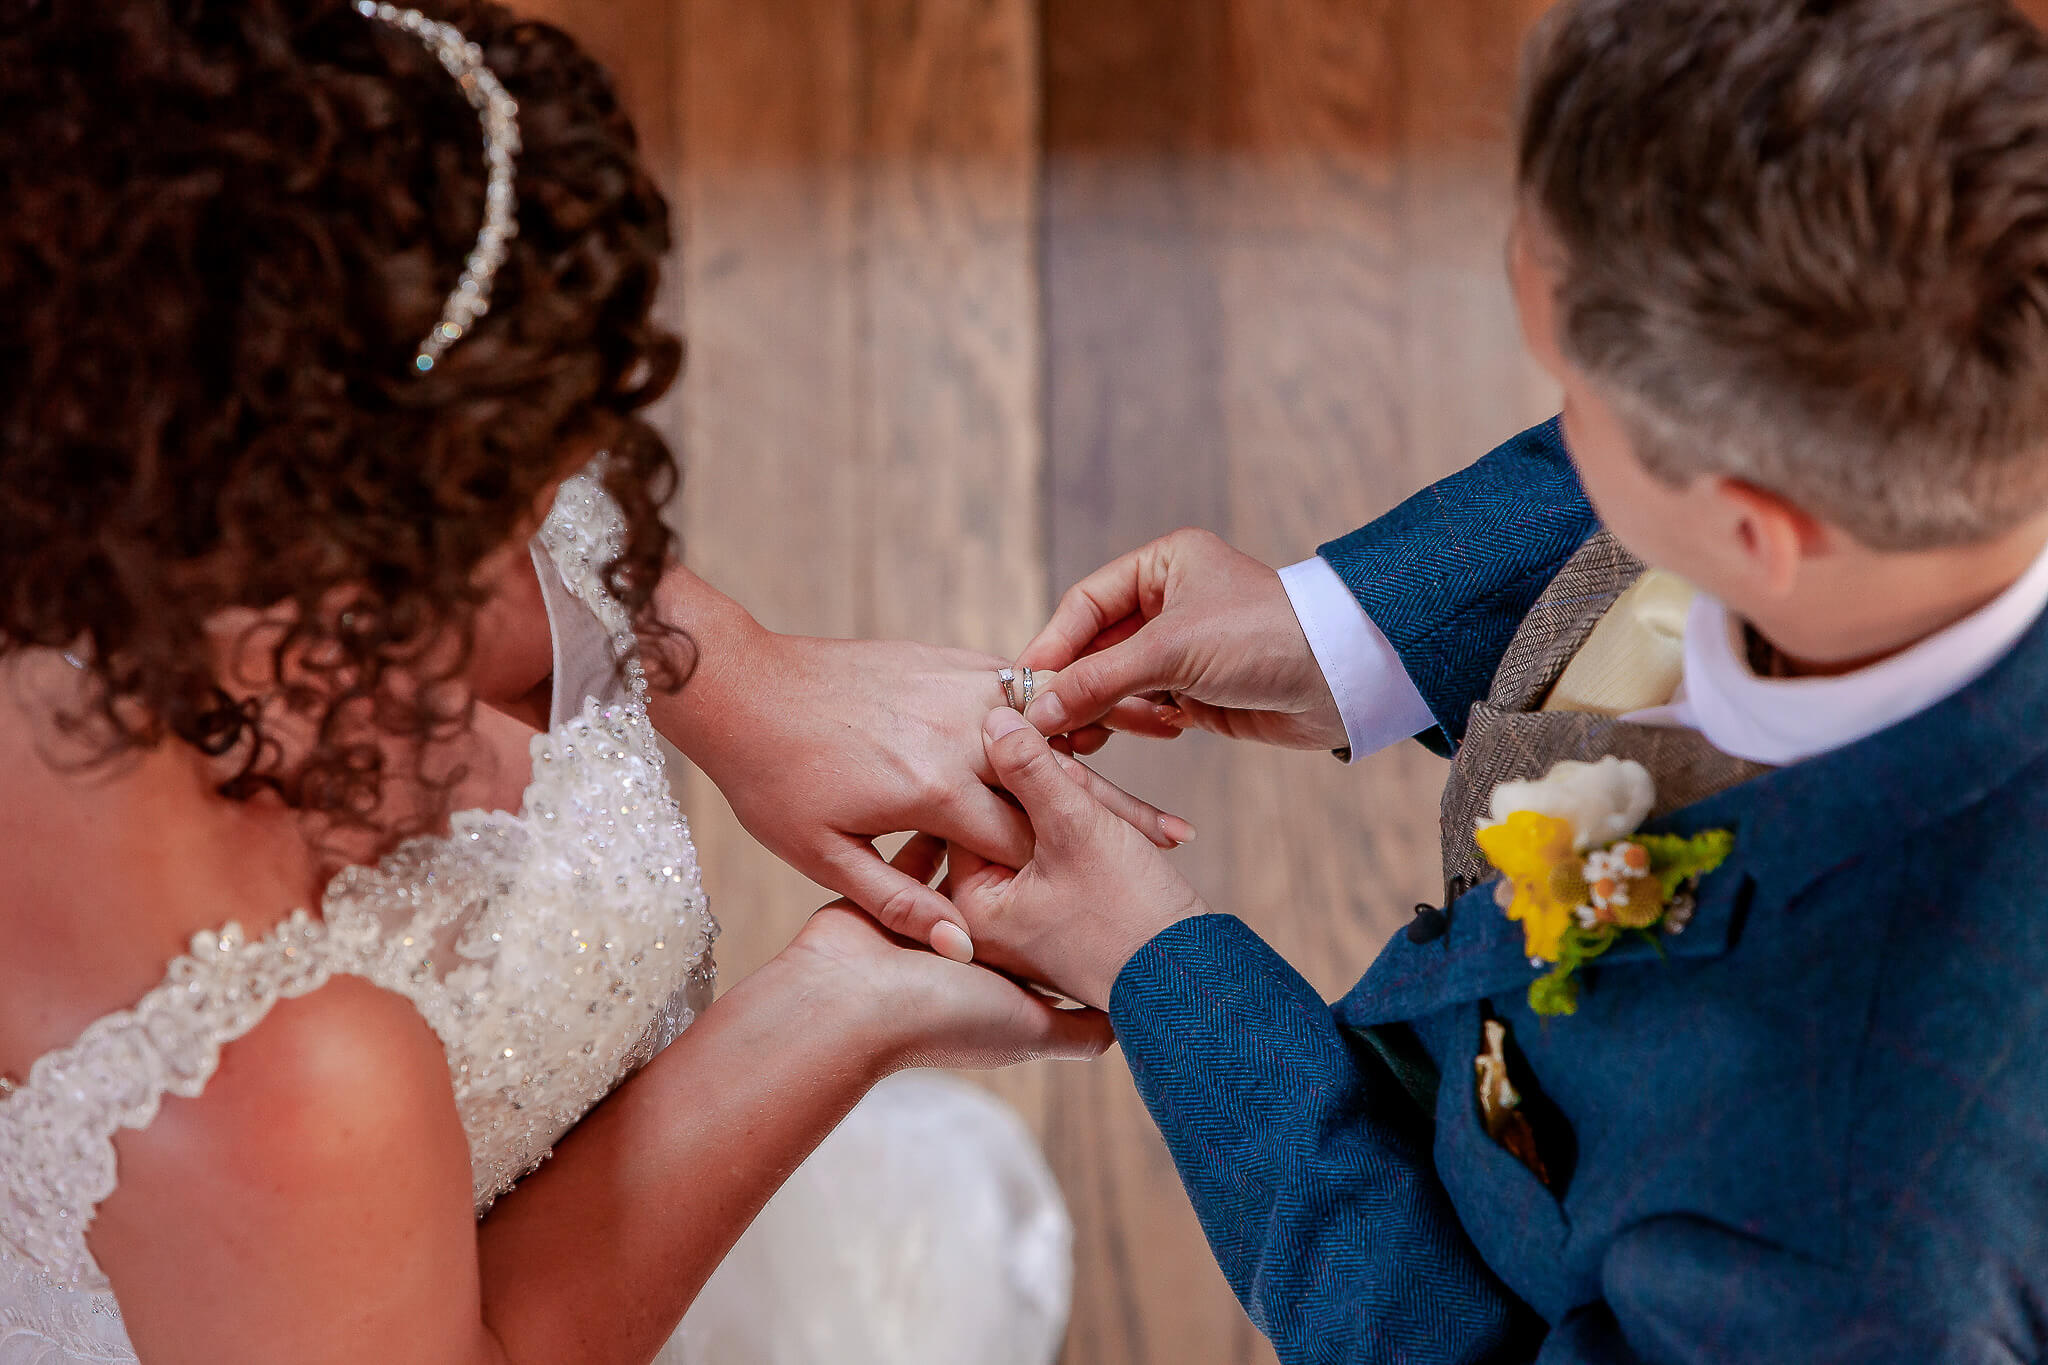 best-wedding-photographers-uk-europe-stanbury-photography-059